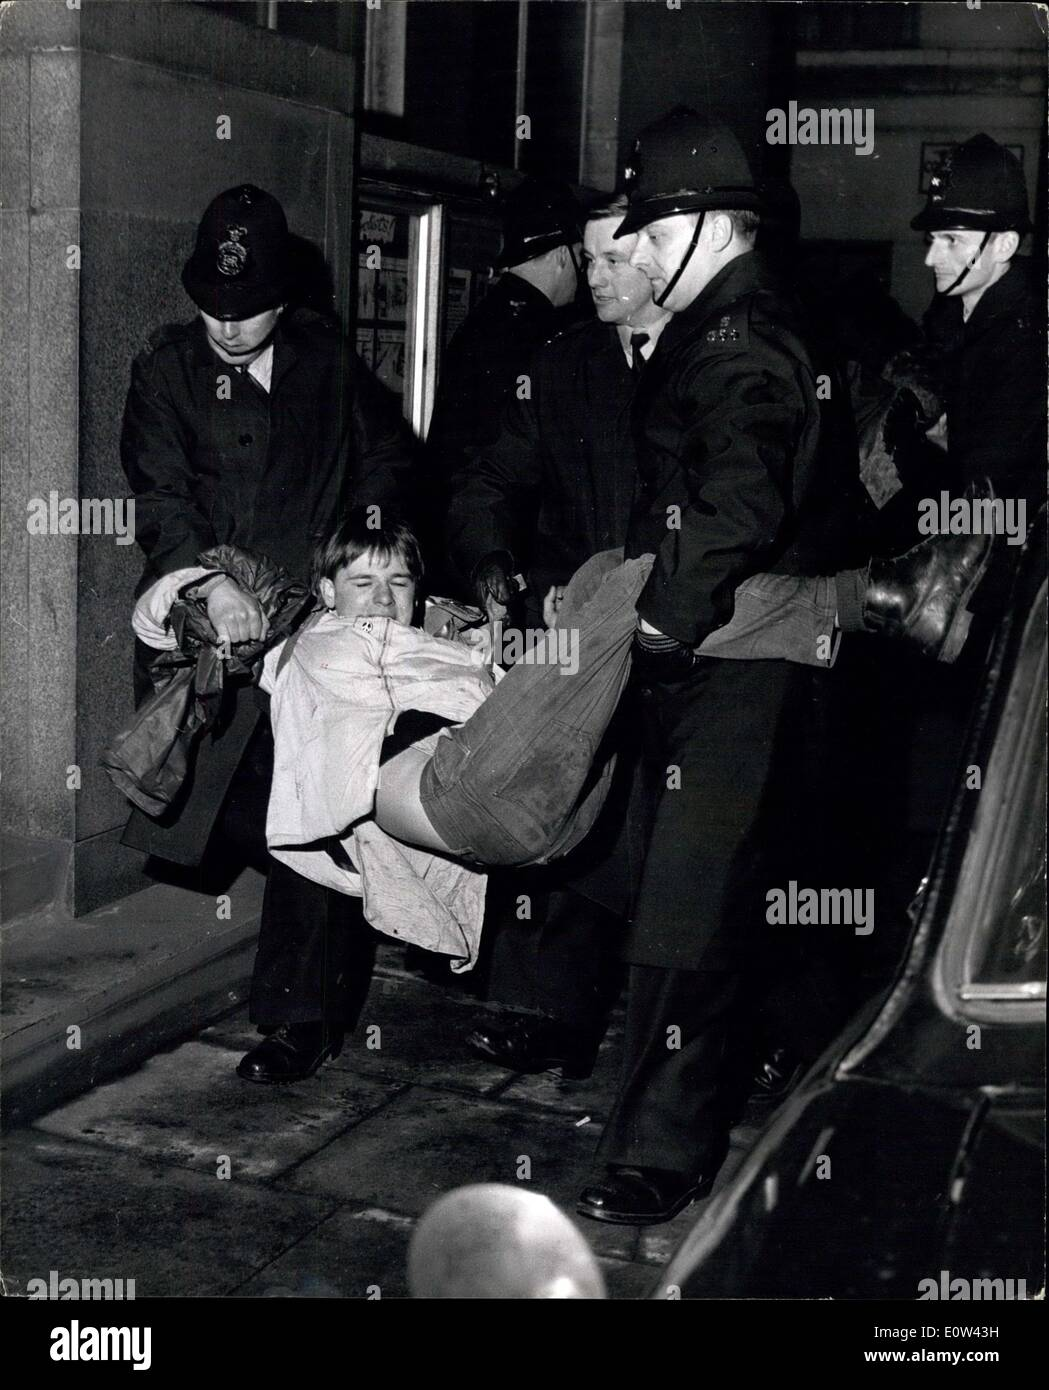 Apr. 04, 1961 - Police Fight Battles with Demonstrators.- A Few Hours After the Trafalgar Square rally at the end of the Ban the Bomb marches from wethersfield and Aldermaston Yesterday, police fought two battles with ban-the bomb demonstrators. the trouble started when 500 demonstrators.sat down in and refused to move. Two of their leaders were arrested and taken to West End Central police station Saville Row, and 200 of the demonstrators surged down the road to the police station to protest - Stock Image